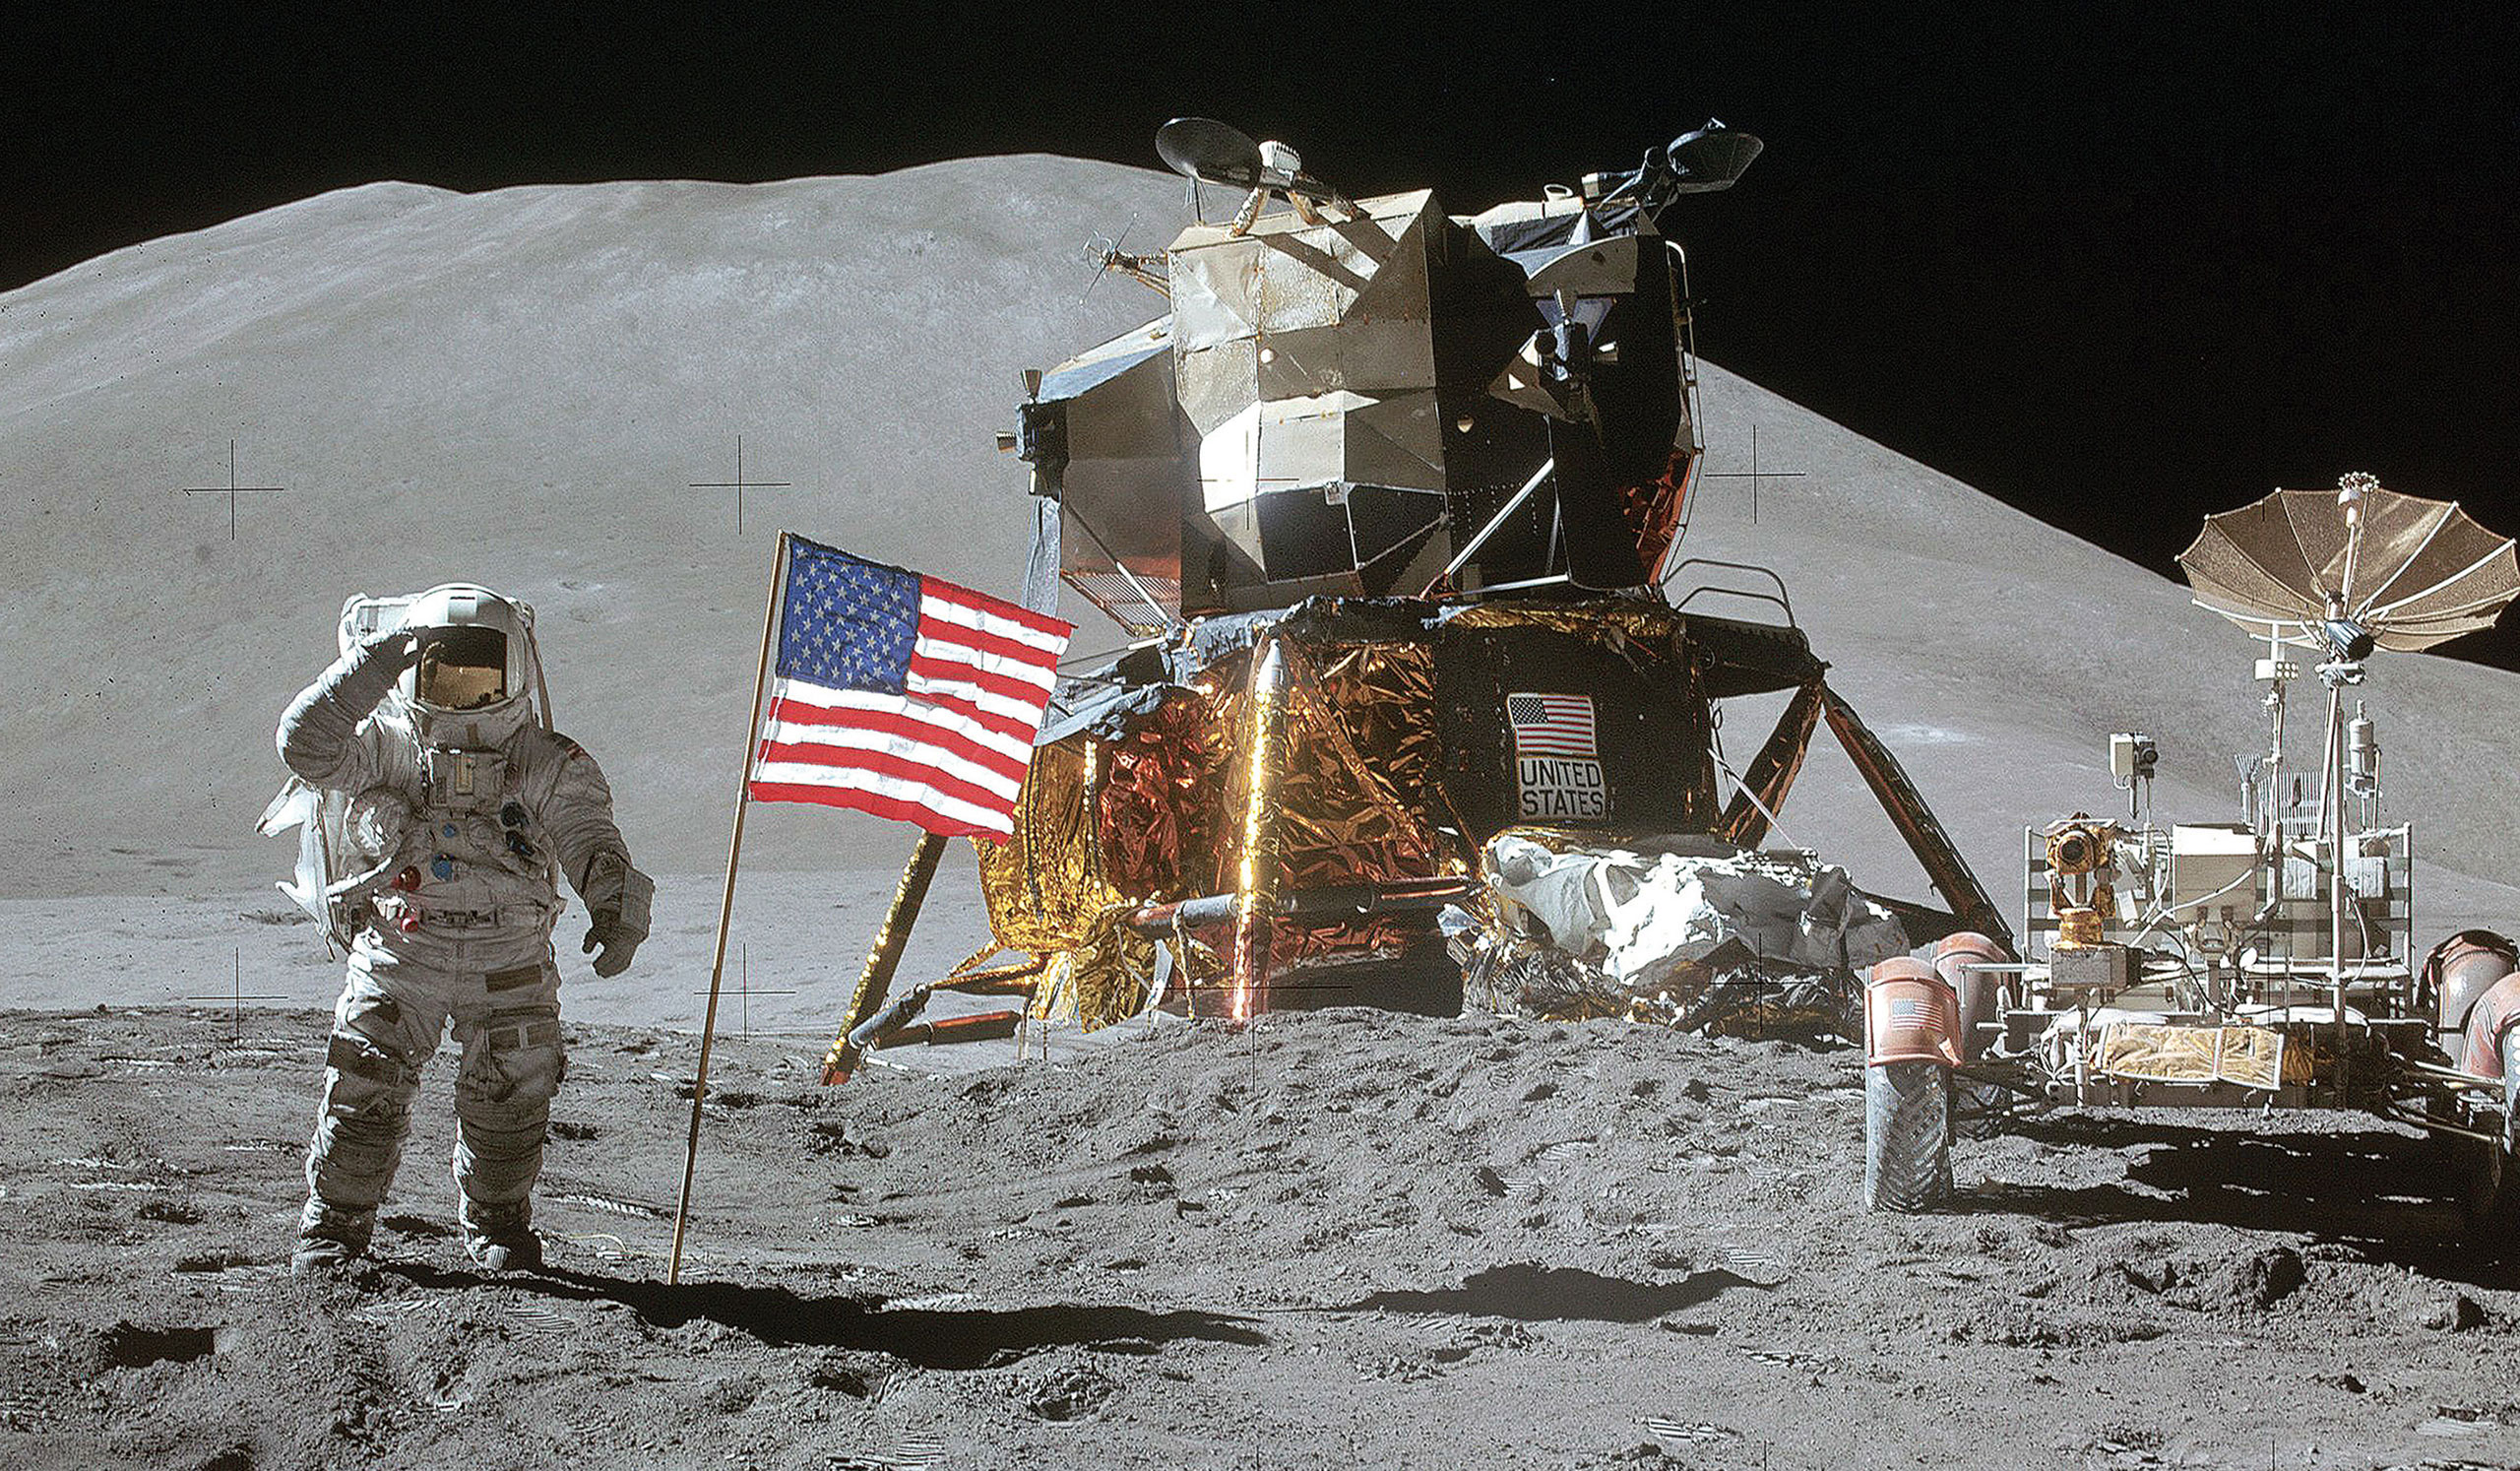 An astronaut on the moon saluting, surrounded by a United States flag, module, and rover